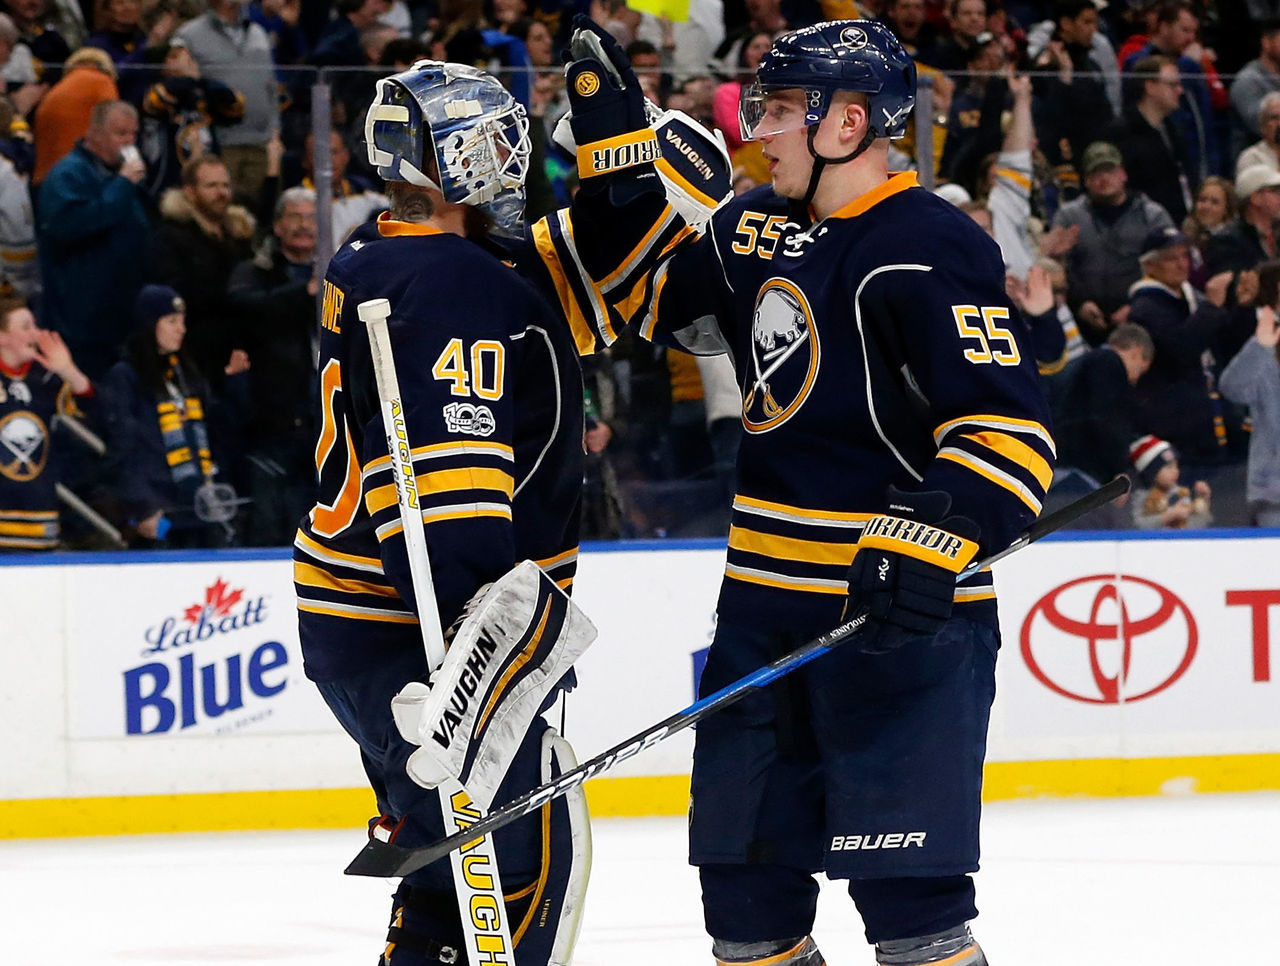 Cropped 2017 03 12t031204z 1486042973 nocid rtrmadp 3 nhl columbus blue jackets at buffalo sabres